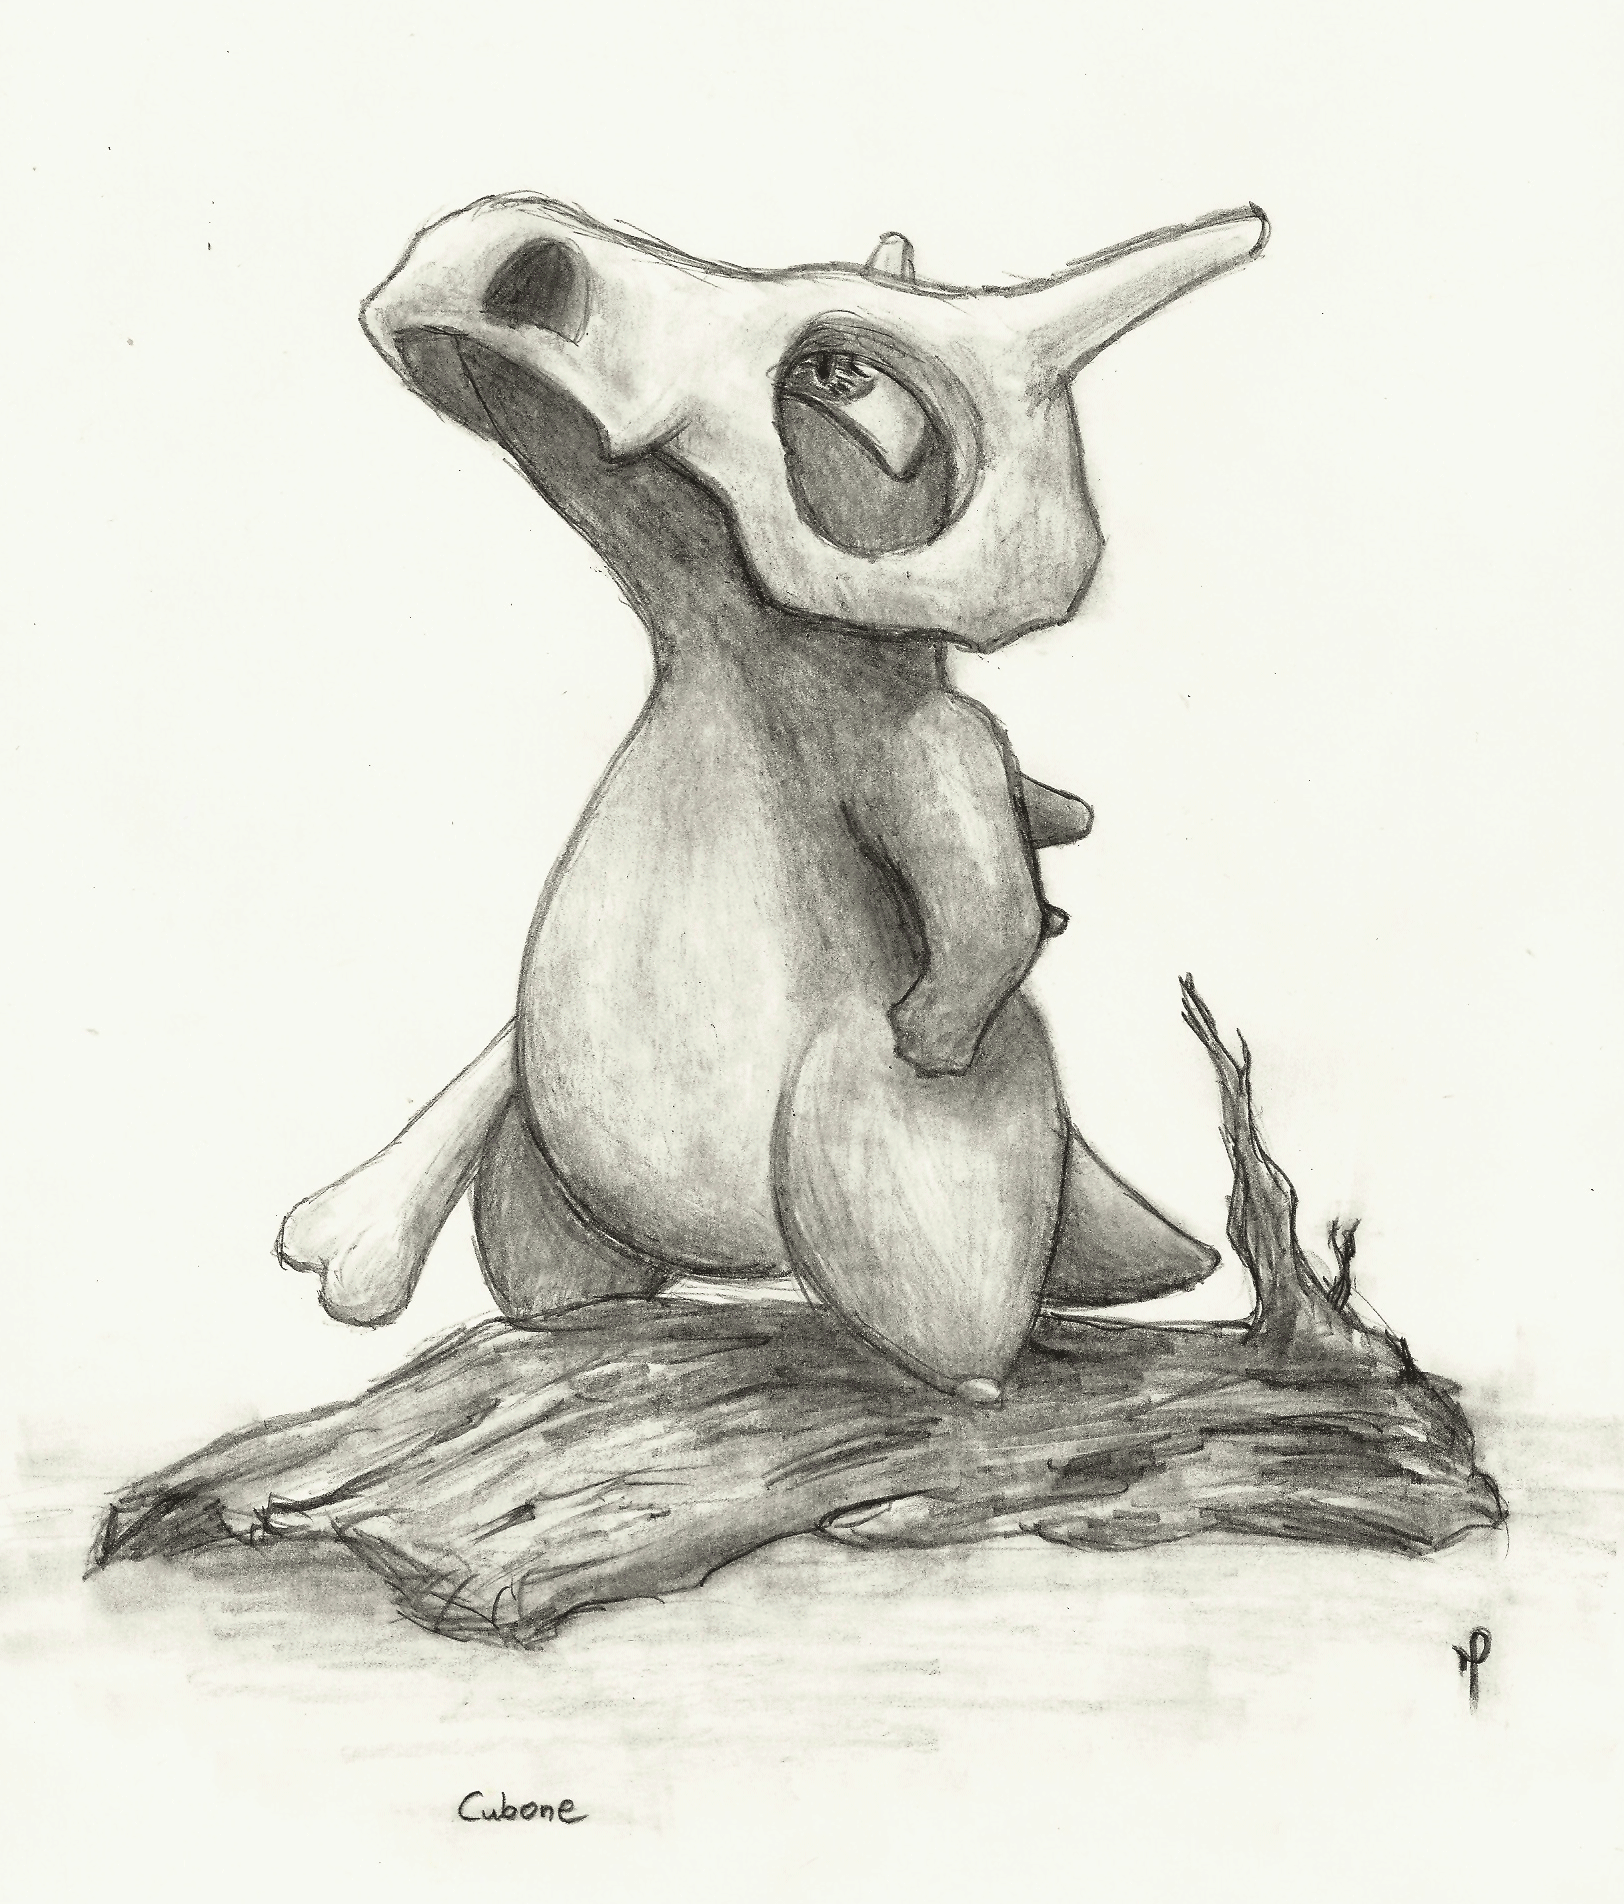 Cubone by BluLizard